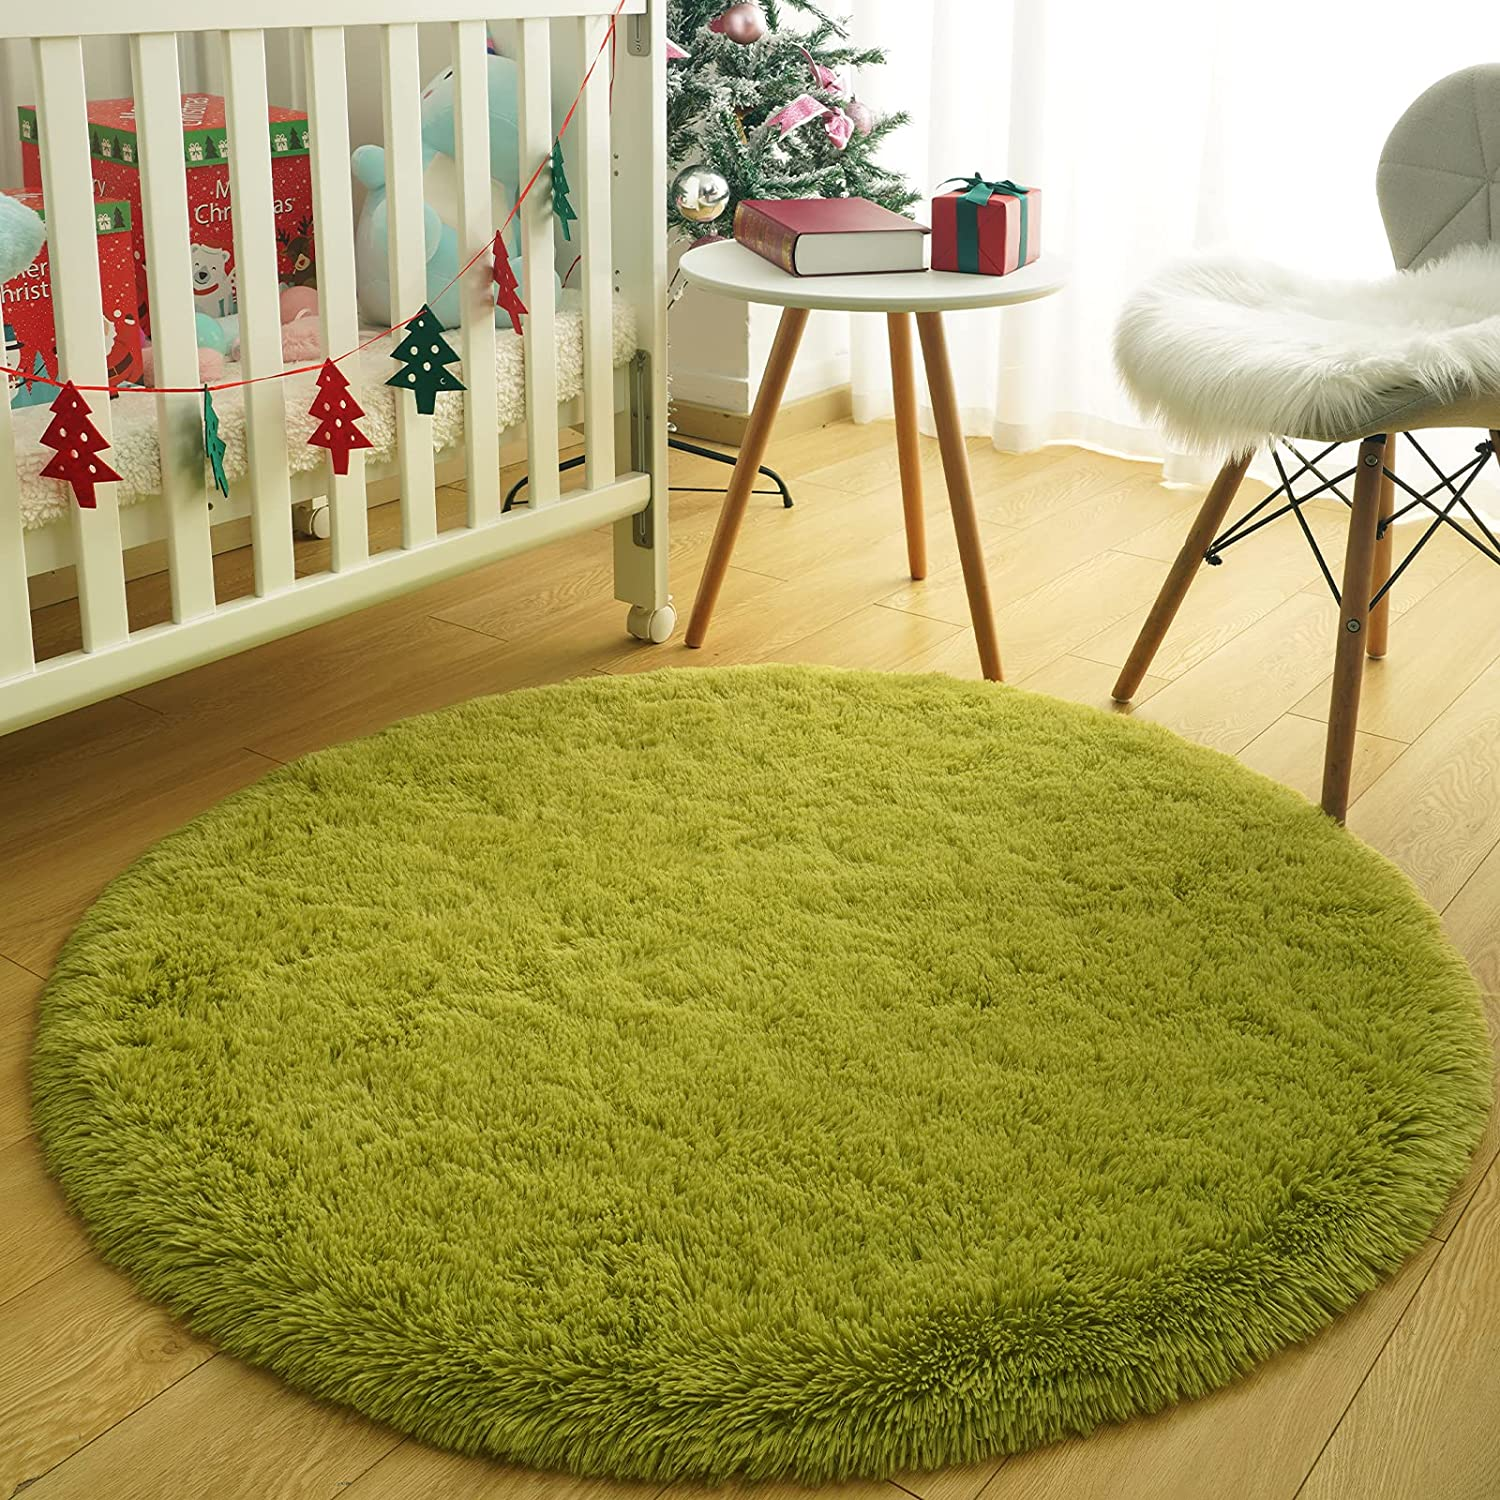 Flagover Green Excellent Round Rug for Bedroom Max 80% OFF Soft 4'x Circle Fluffy